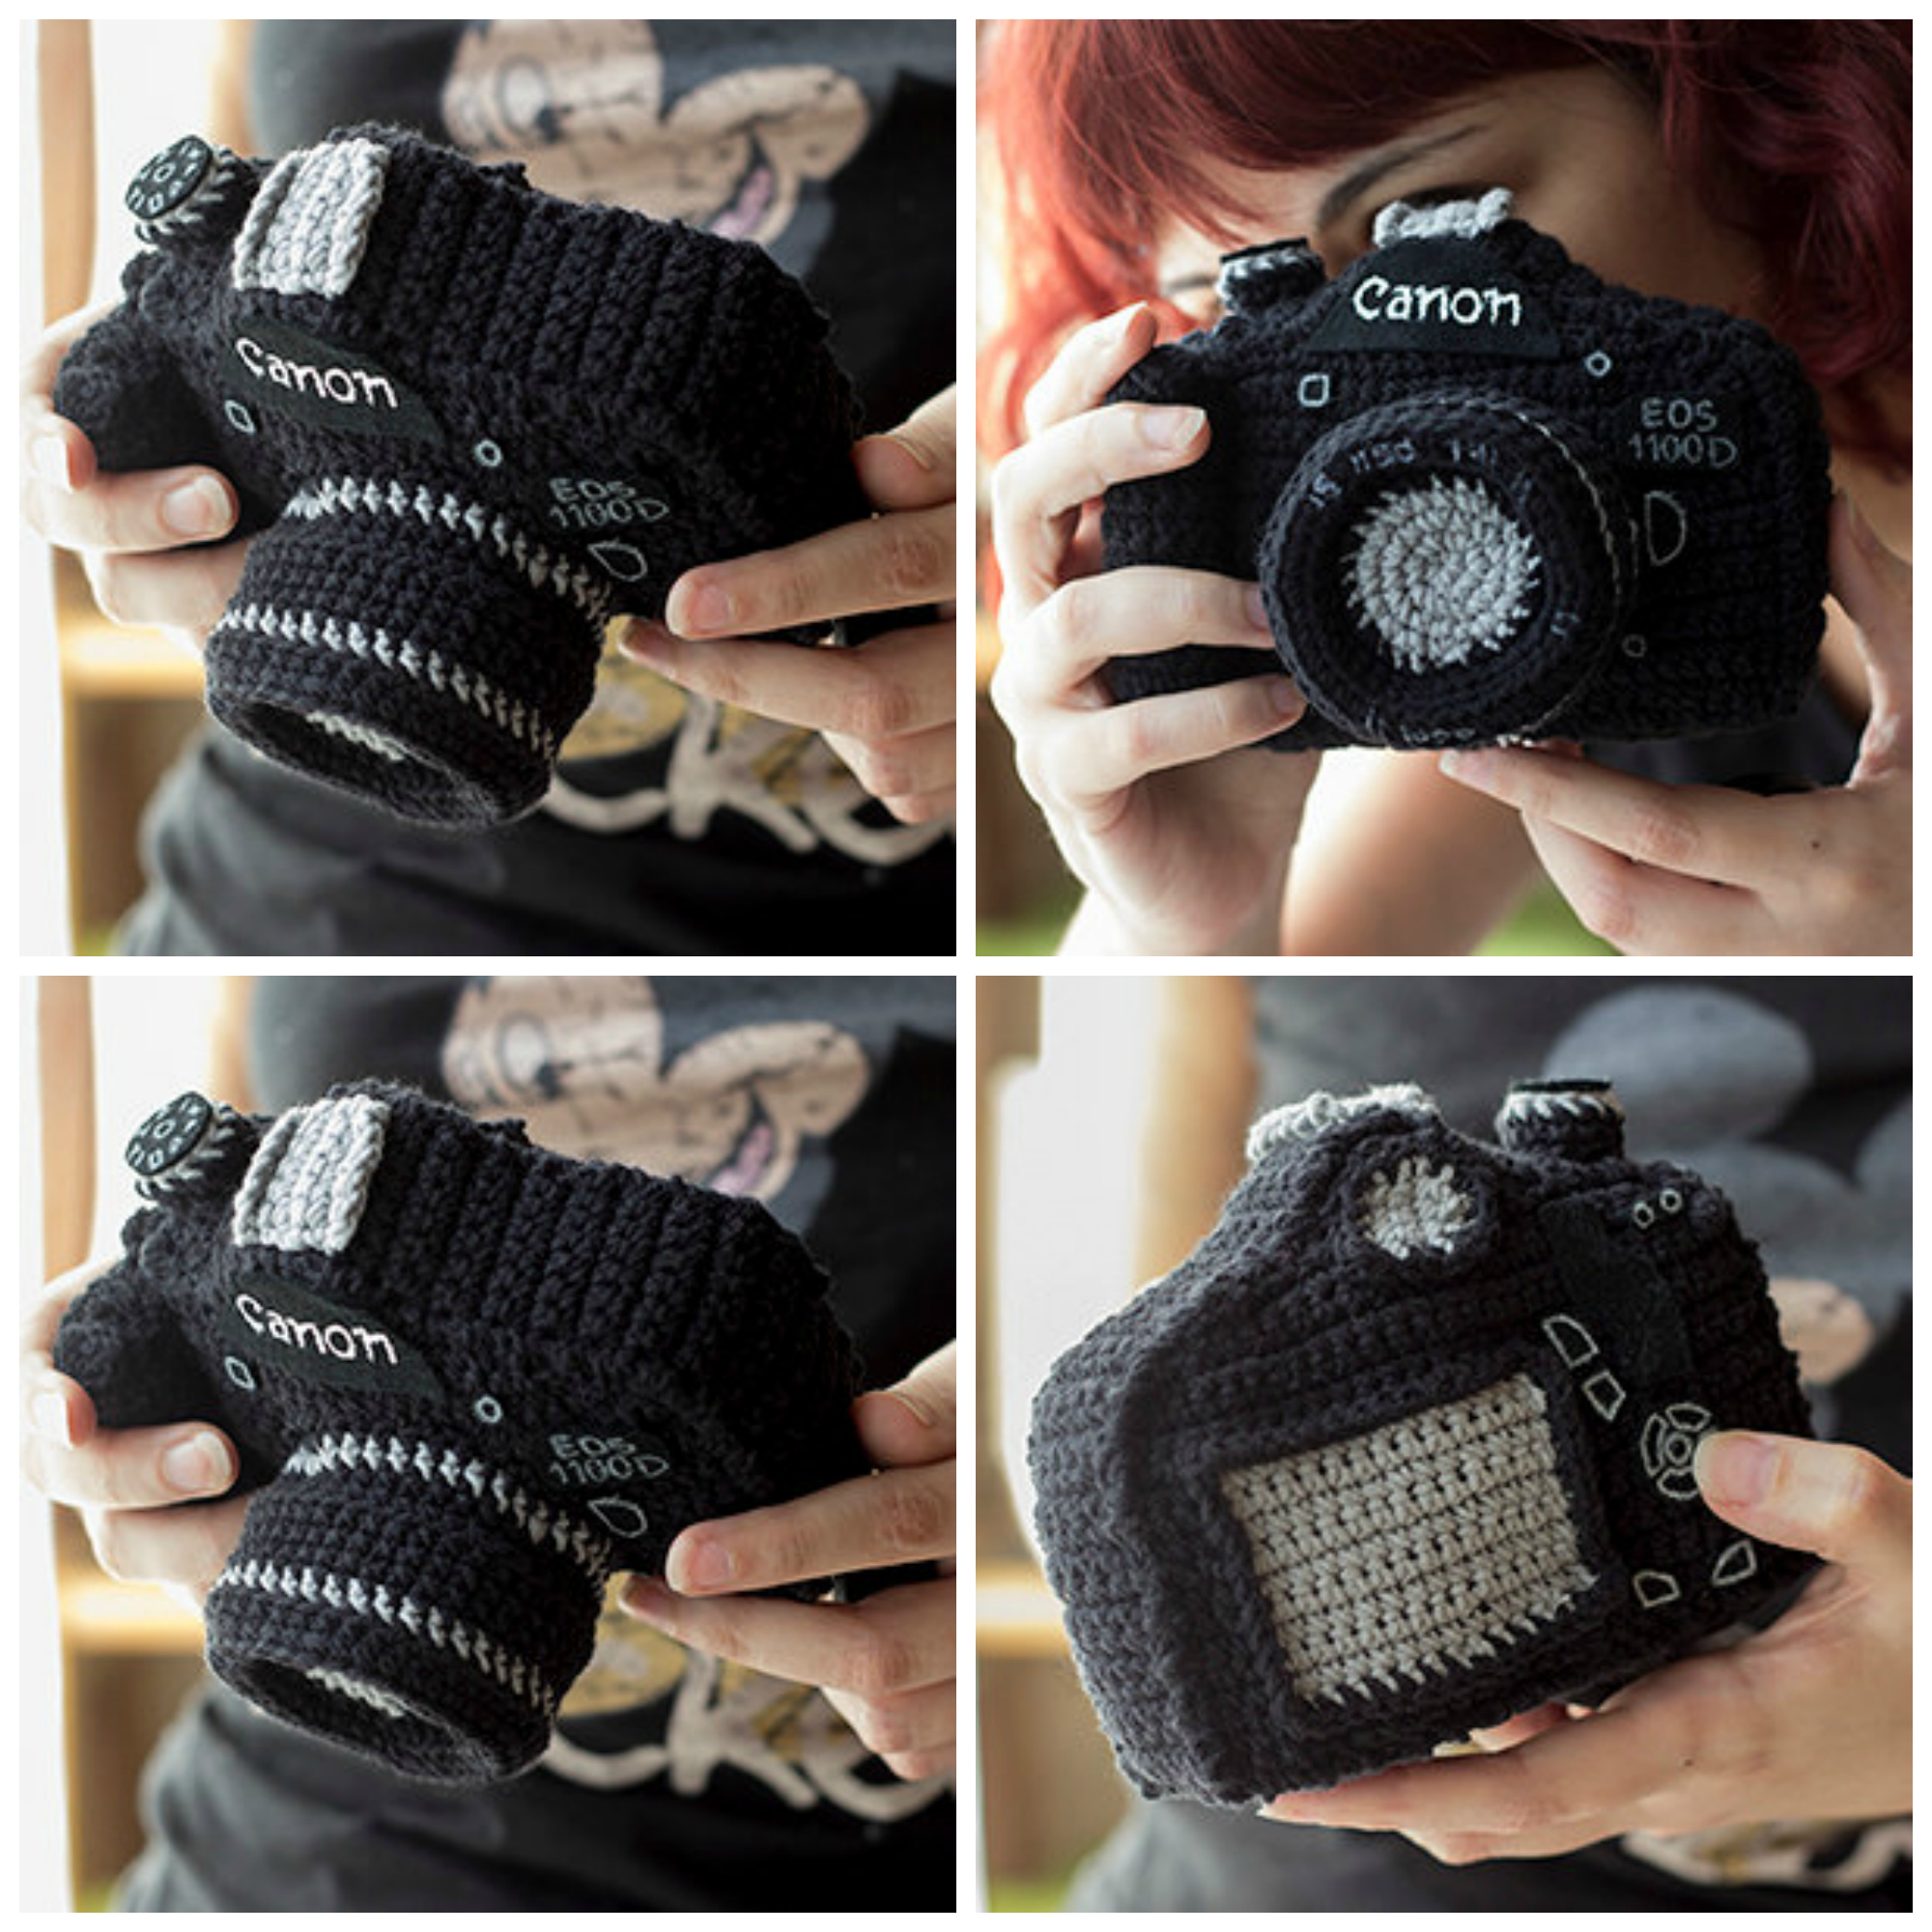 Amigurumi Reflex Camera - Get The Pattern, Make a Unique Gift!